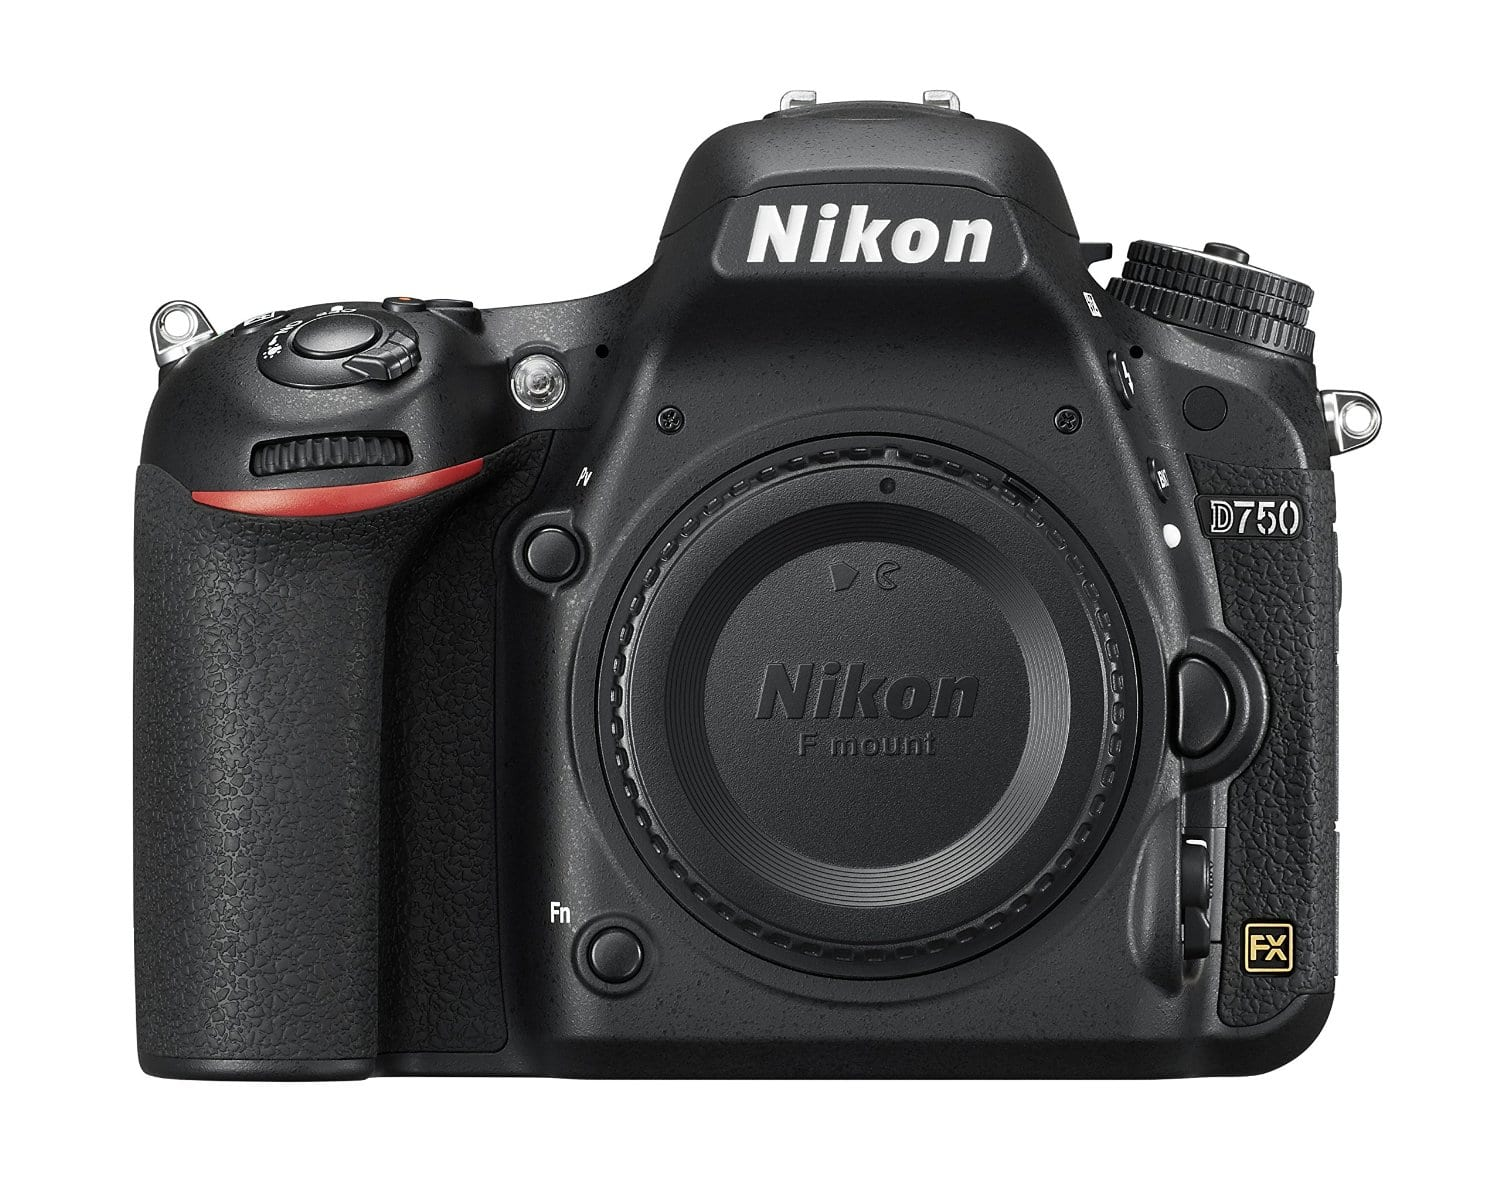 Nikon D750 FX new US model for $1696 at Amazon